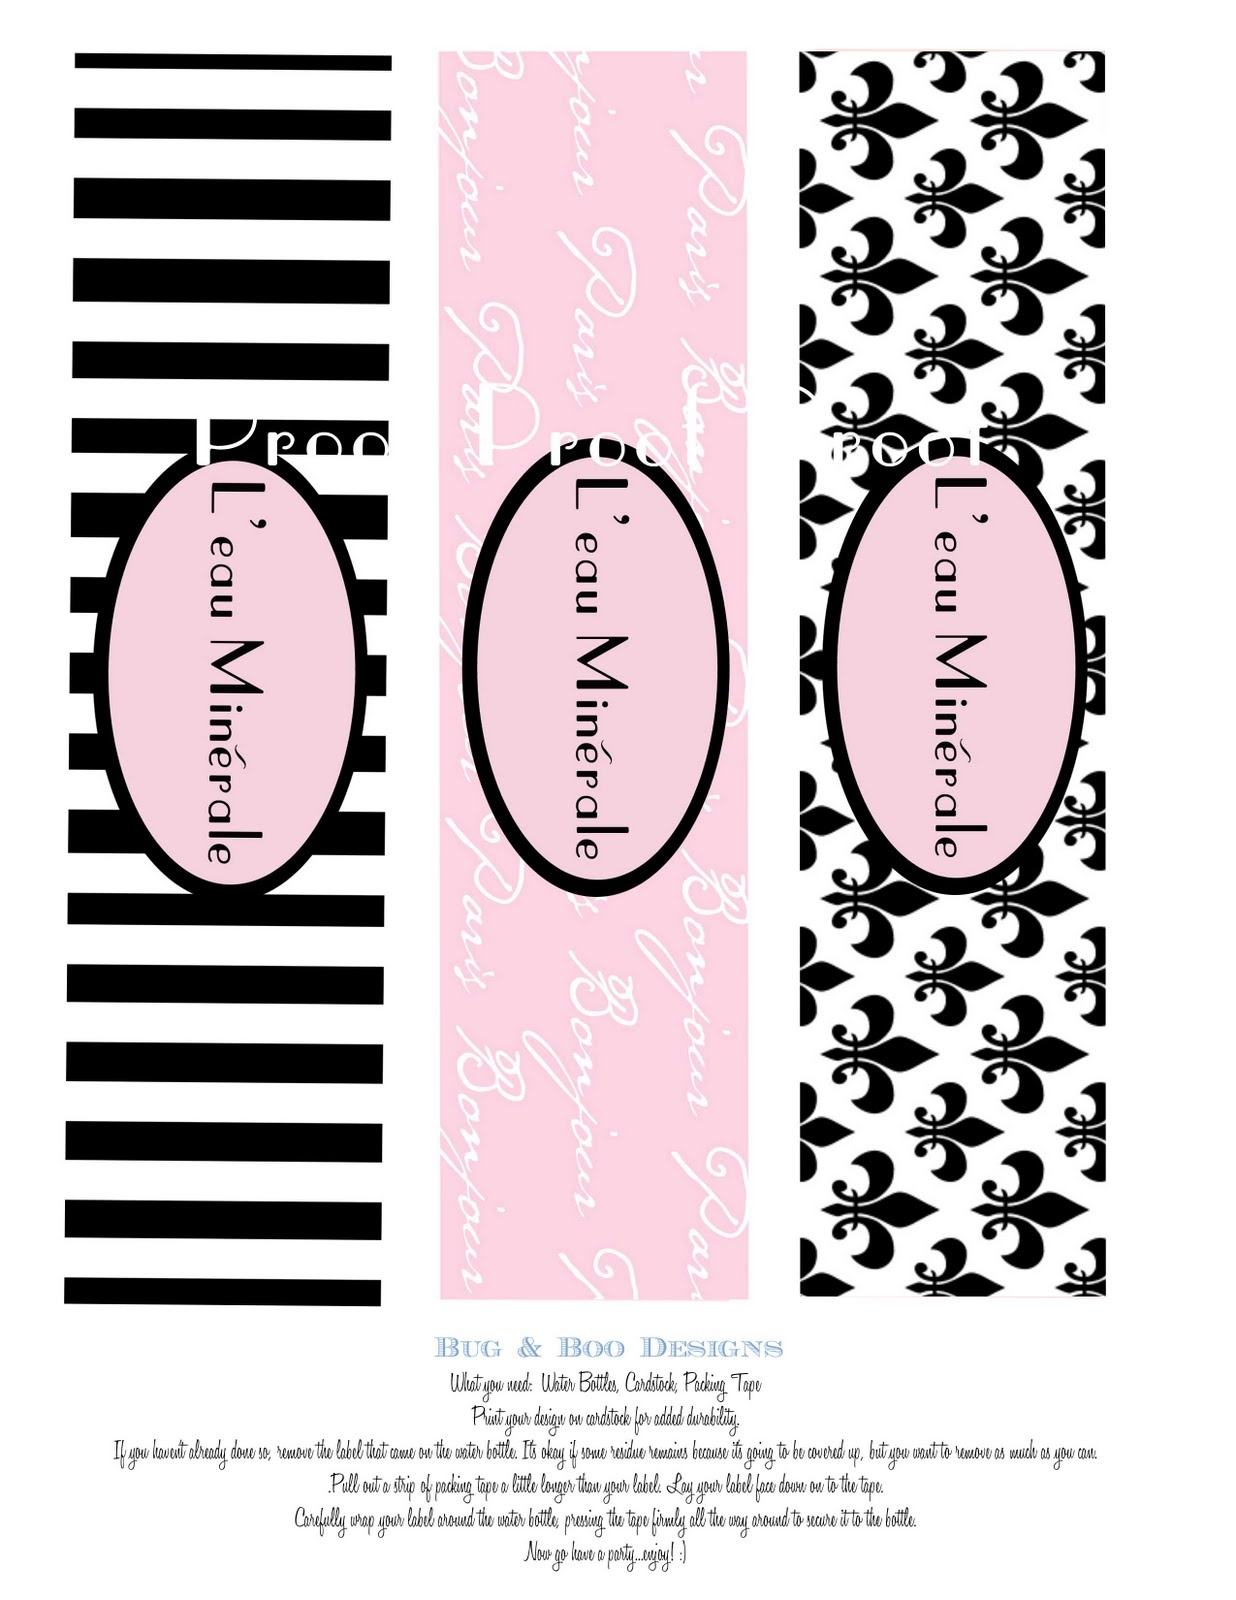 Cake Face Toppers: Paris Party Printables! - Free Printable Paris Water Bottle Labels